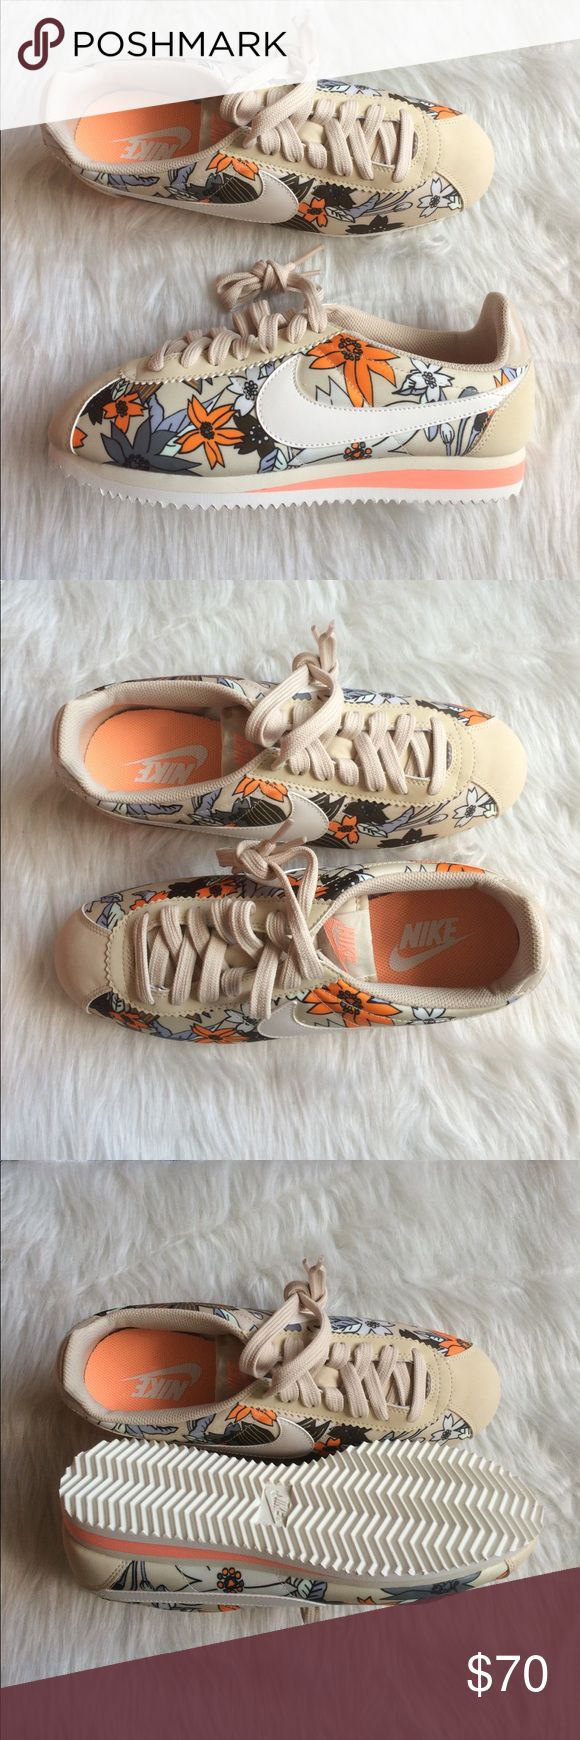 NIKE CORTEZ WOMENS FLORAL PRINT PREMIUM SHOES NEW Brand new without box. Ships same day or very next. 100% authentic. Comment if you have any questions before purchasing. WOMENS. Nike Shoes Sneakers